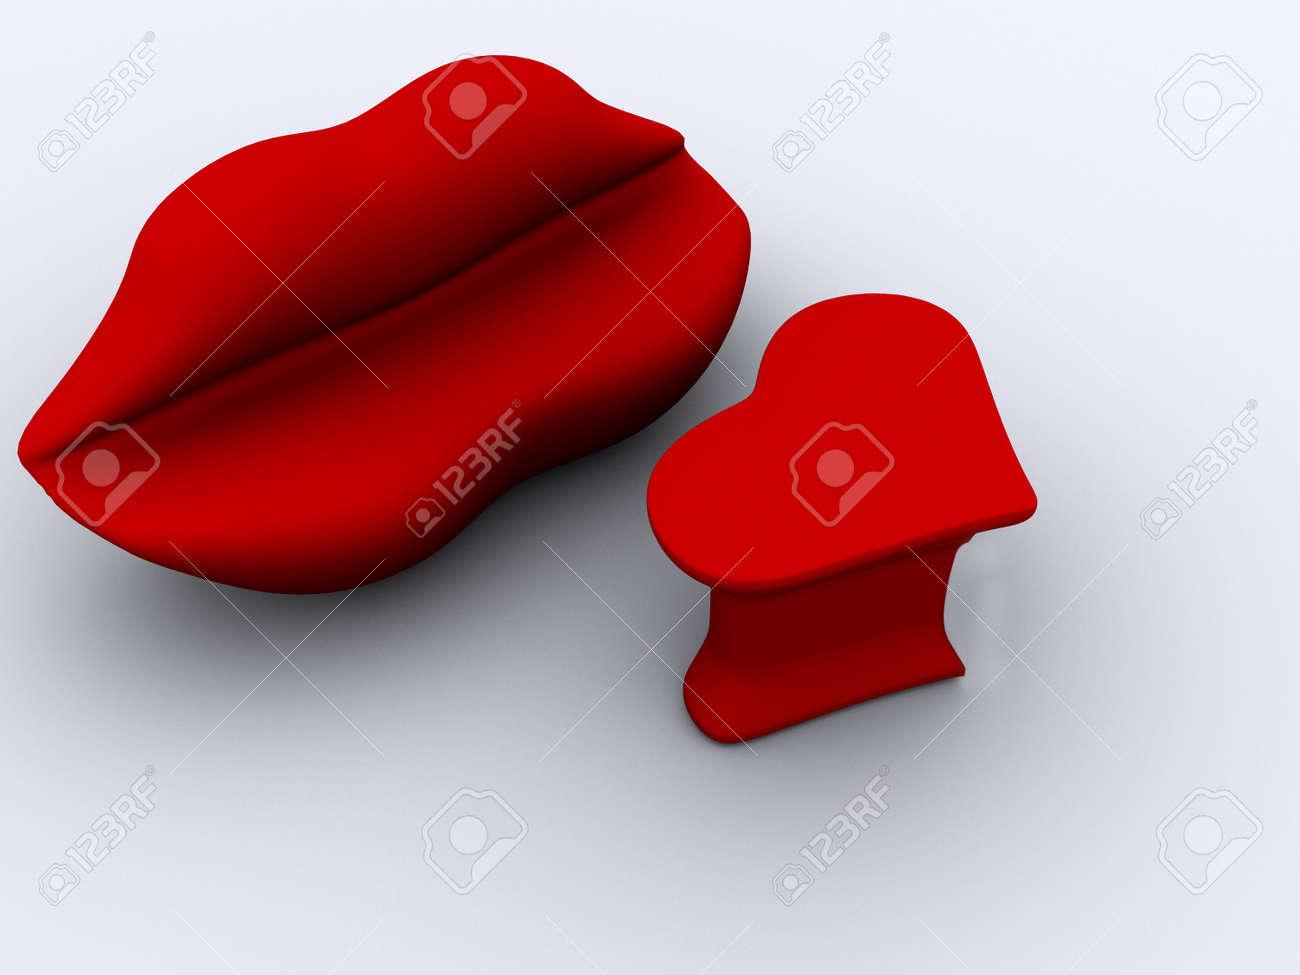 A Lips Sofa And A Heart Table On White Background   3d Render Stock Photo